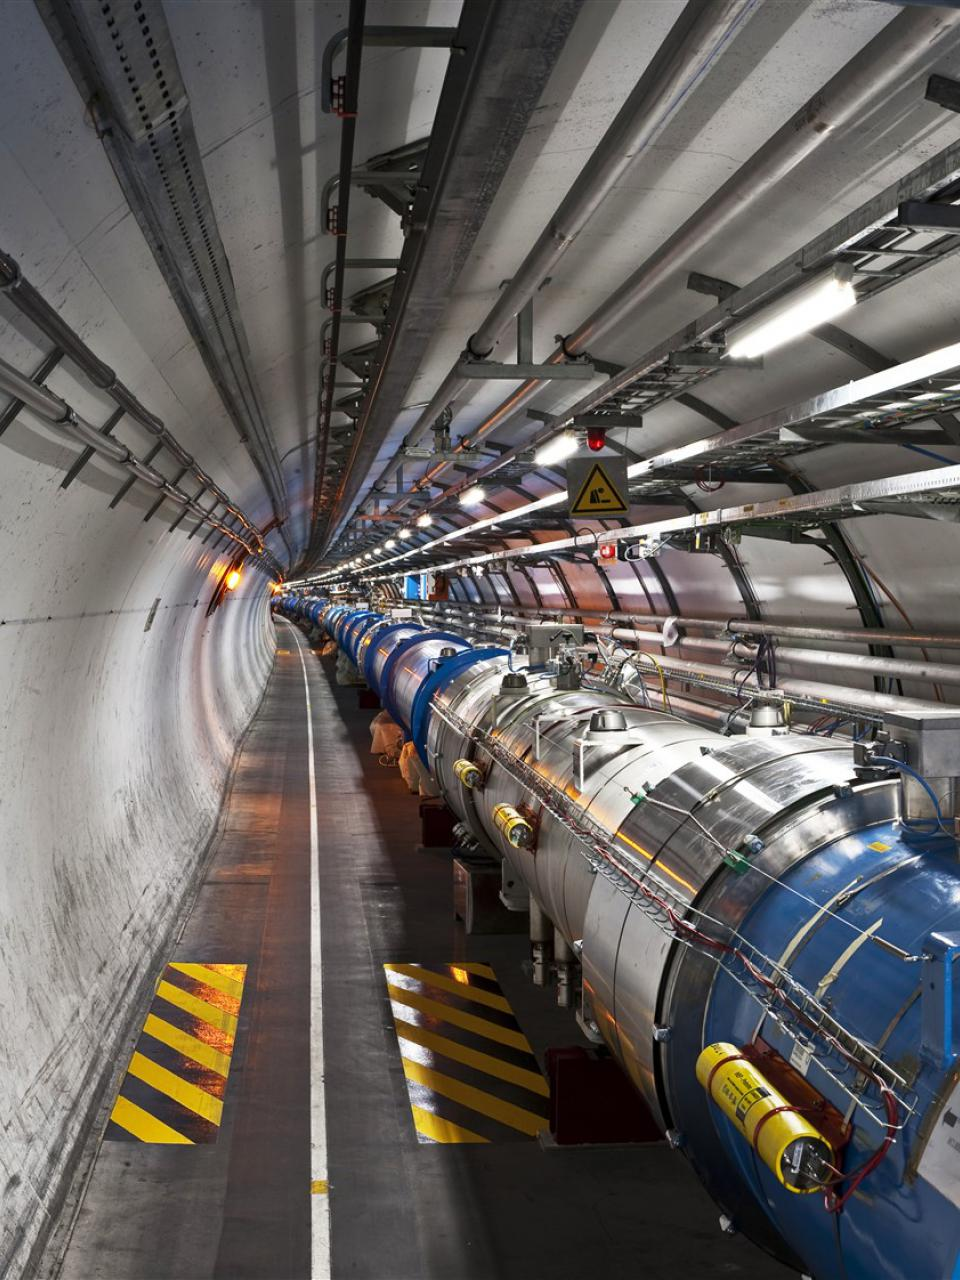 The tunnel of the Large Hadron Collider (LHC).